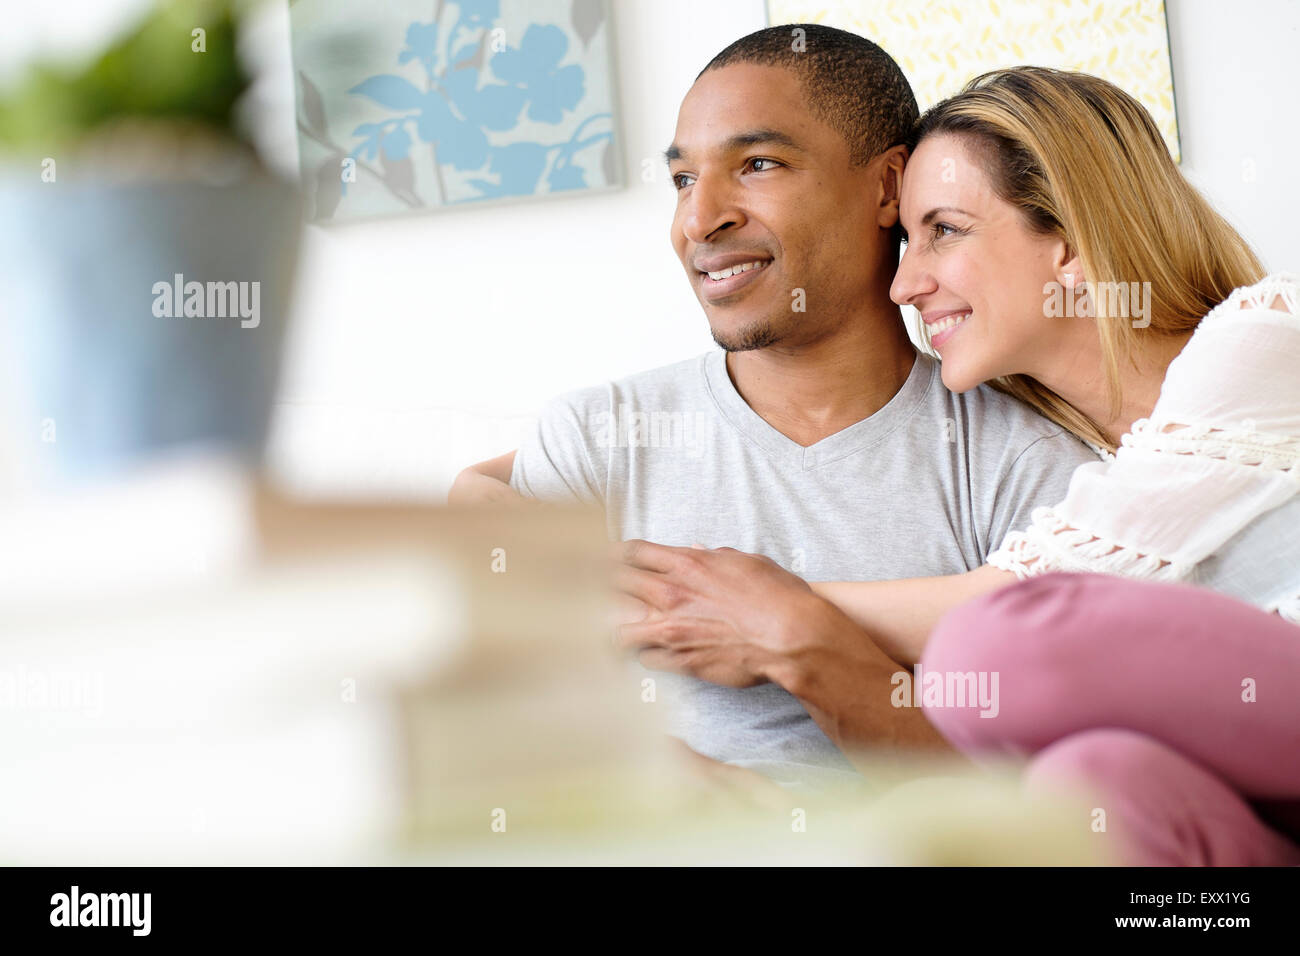 Young couple embracing in living room Photo Stock